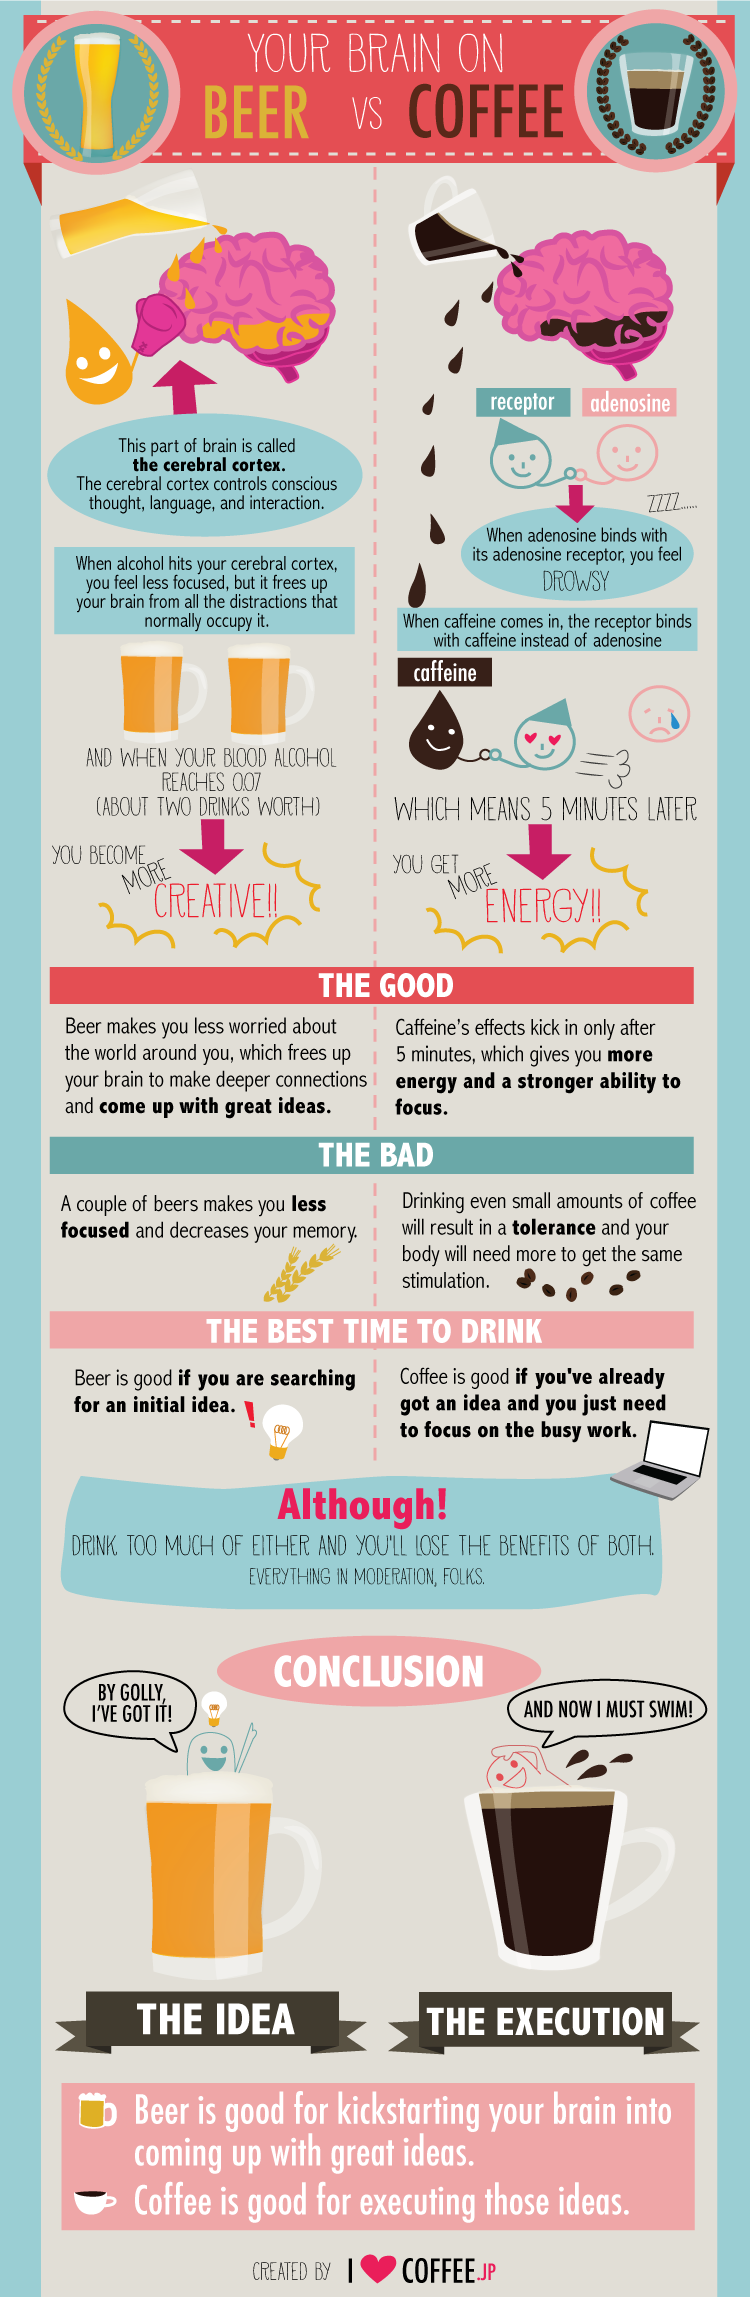 Your Brain on Coffee vs Beer